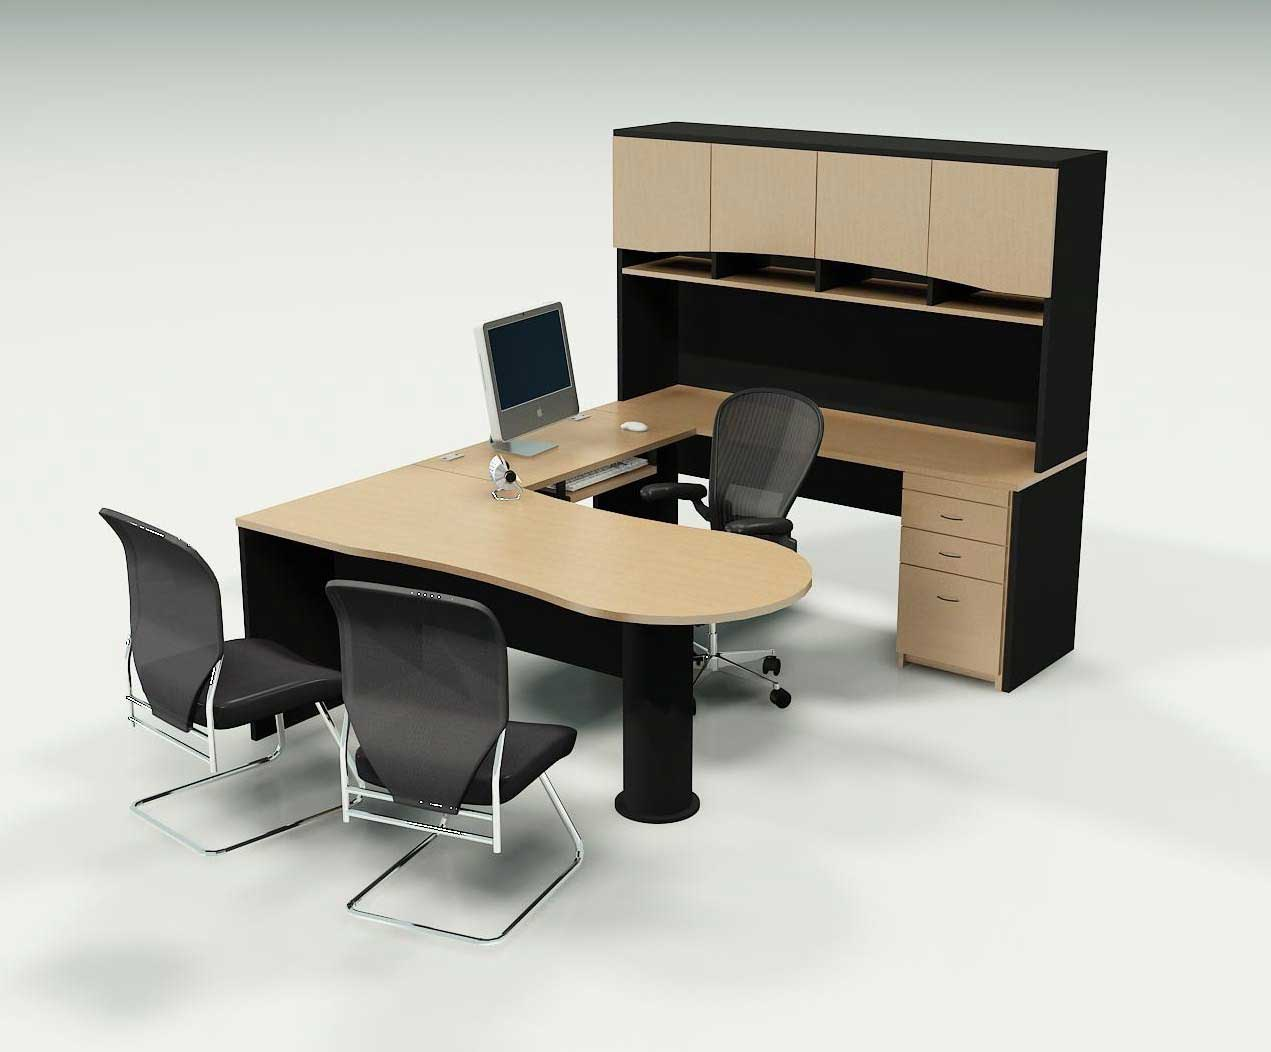 Perfect Style of Office Depot Desks for Your Workspace Ideas: Office Chairs Costco | Office Depot Desks | Office Depot Desks